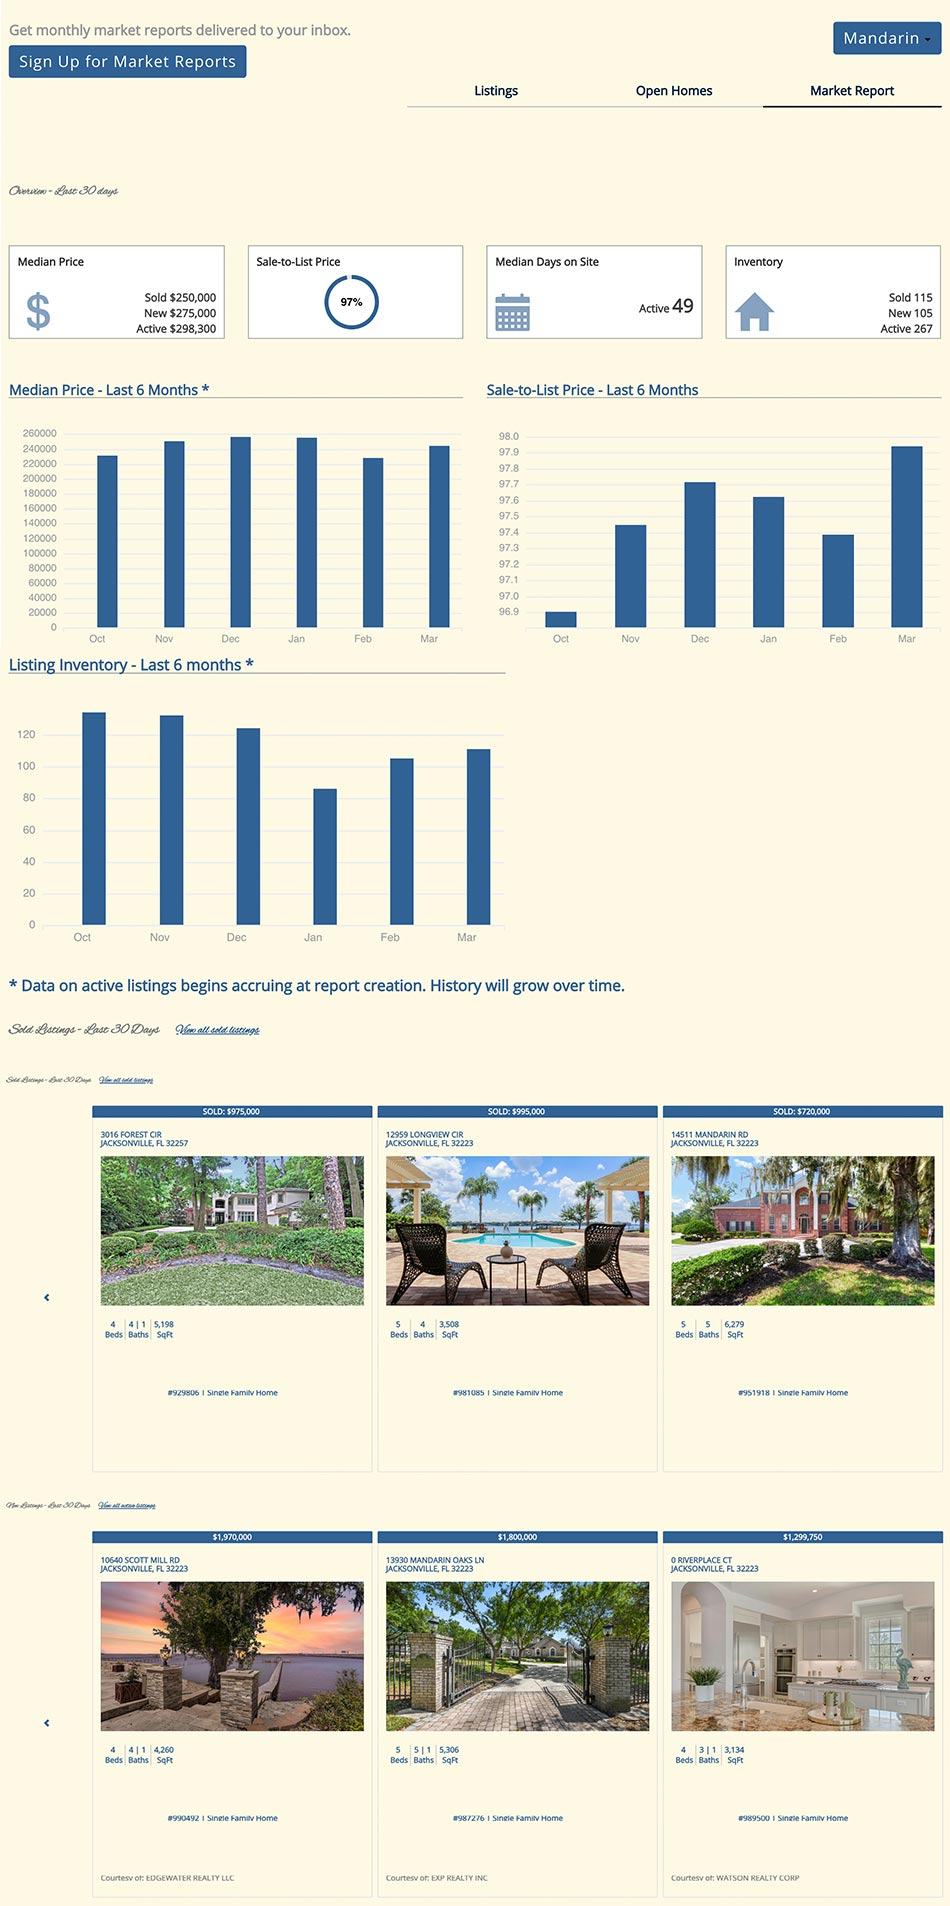 Jacksonville, FL Real Estate Marketing Report Sample